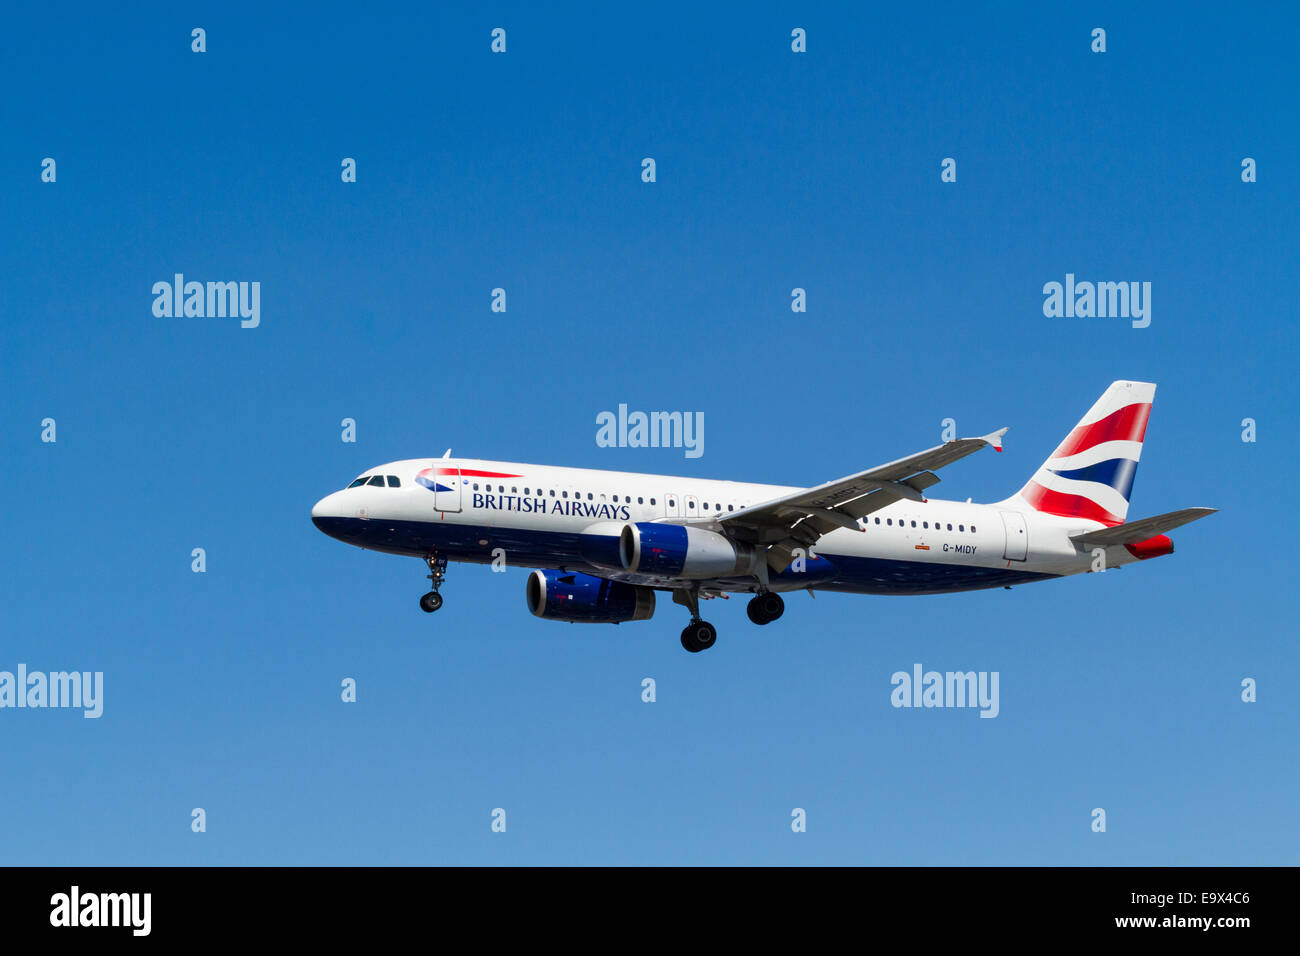 British Airways Airbus A320, G-MIDY on landing approach at London Heathrow, England, UK - Stock Image